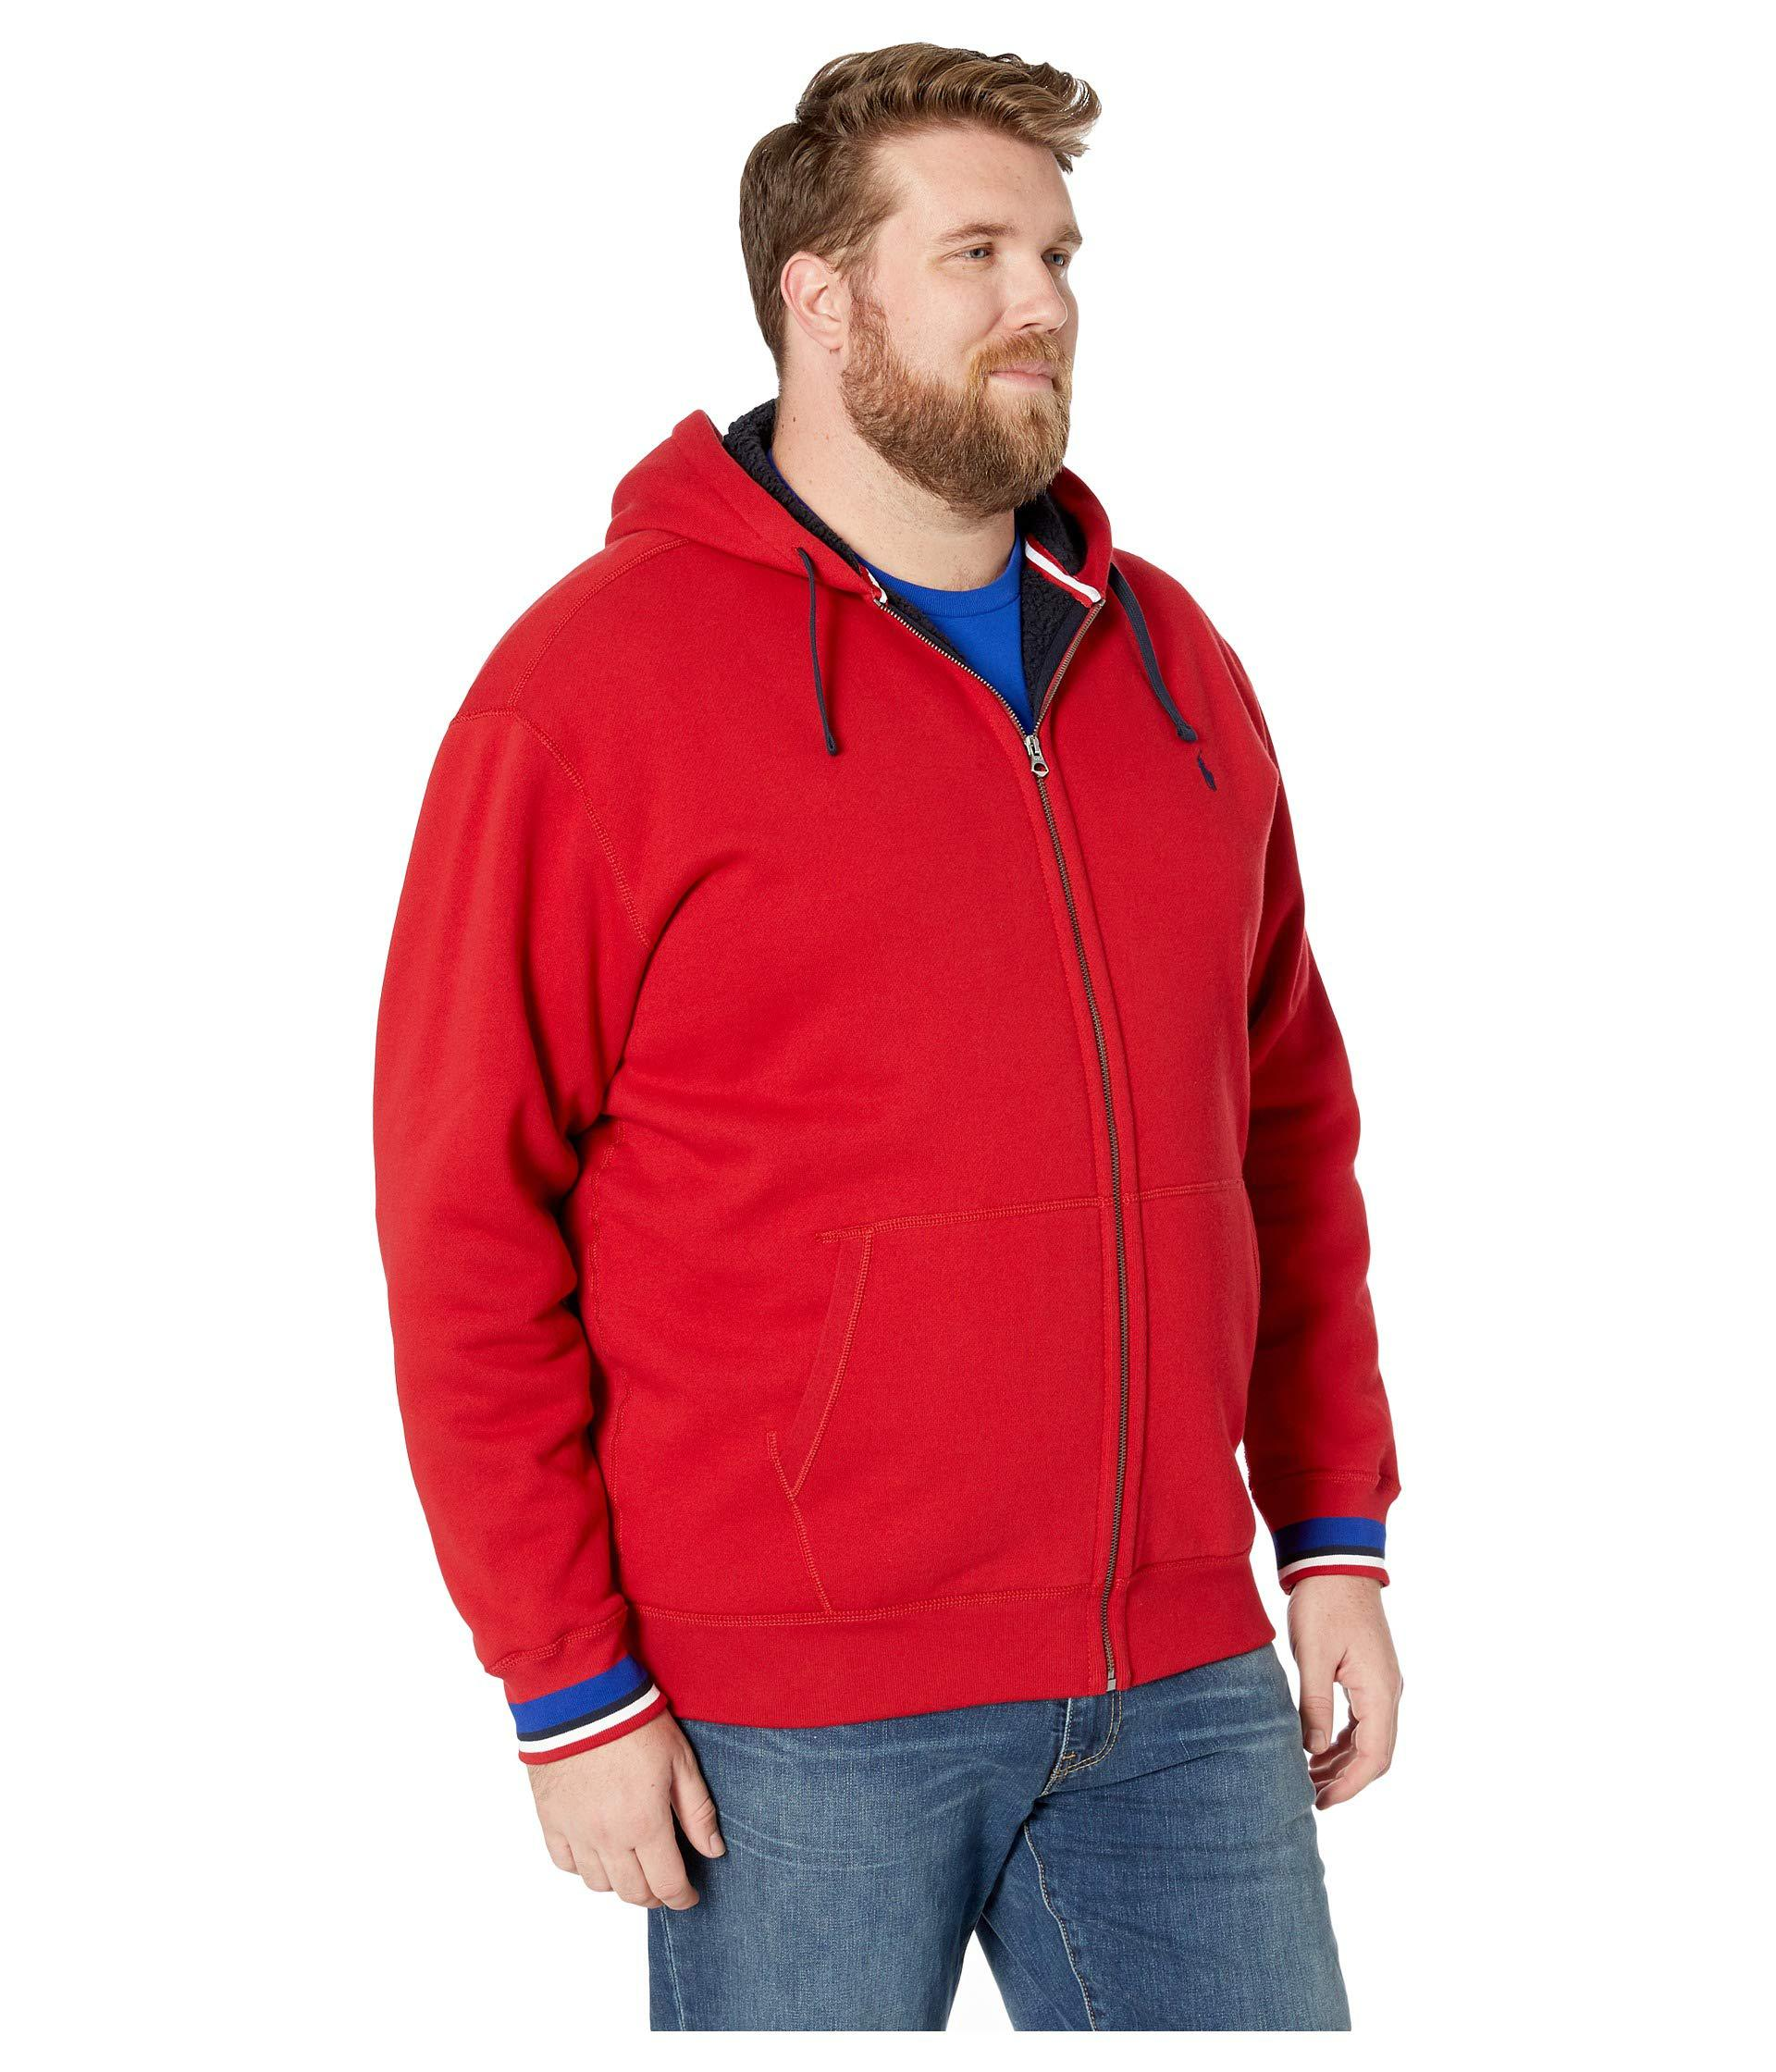 ac3a619ef Polo Ralph Lauren Big Tall Classic Athletic Sherpa Lined Fleece Full ...